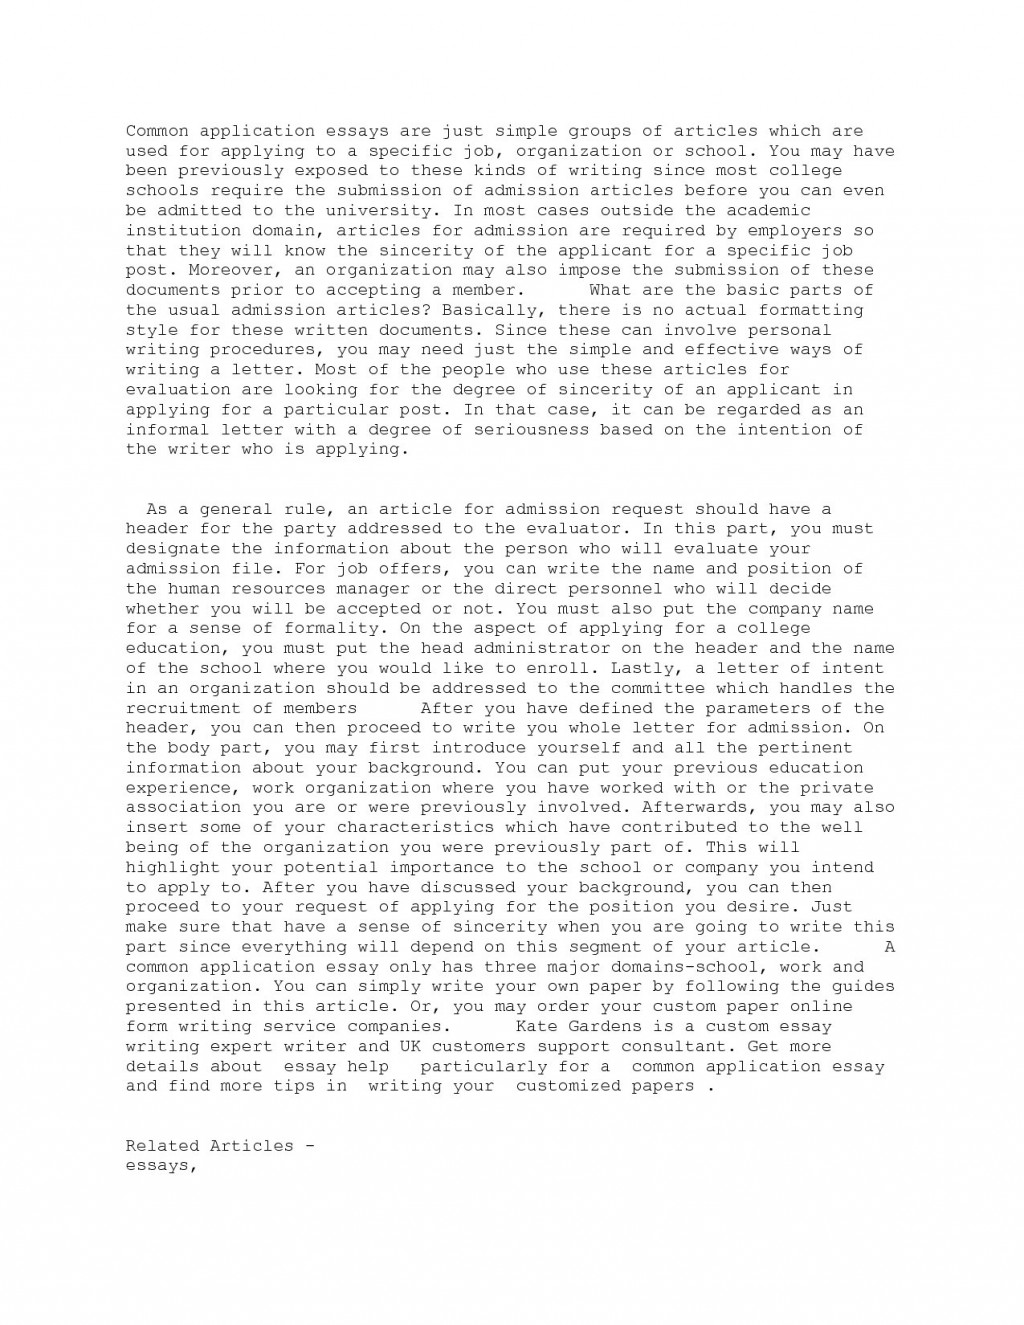 015 Common App College Essay Example Examples Of Essays For Application Transfer Ess Striking Word Limit Topics Samples Large